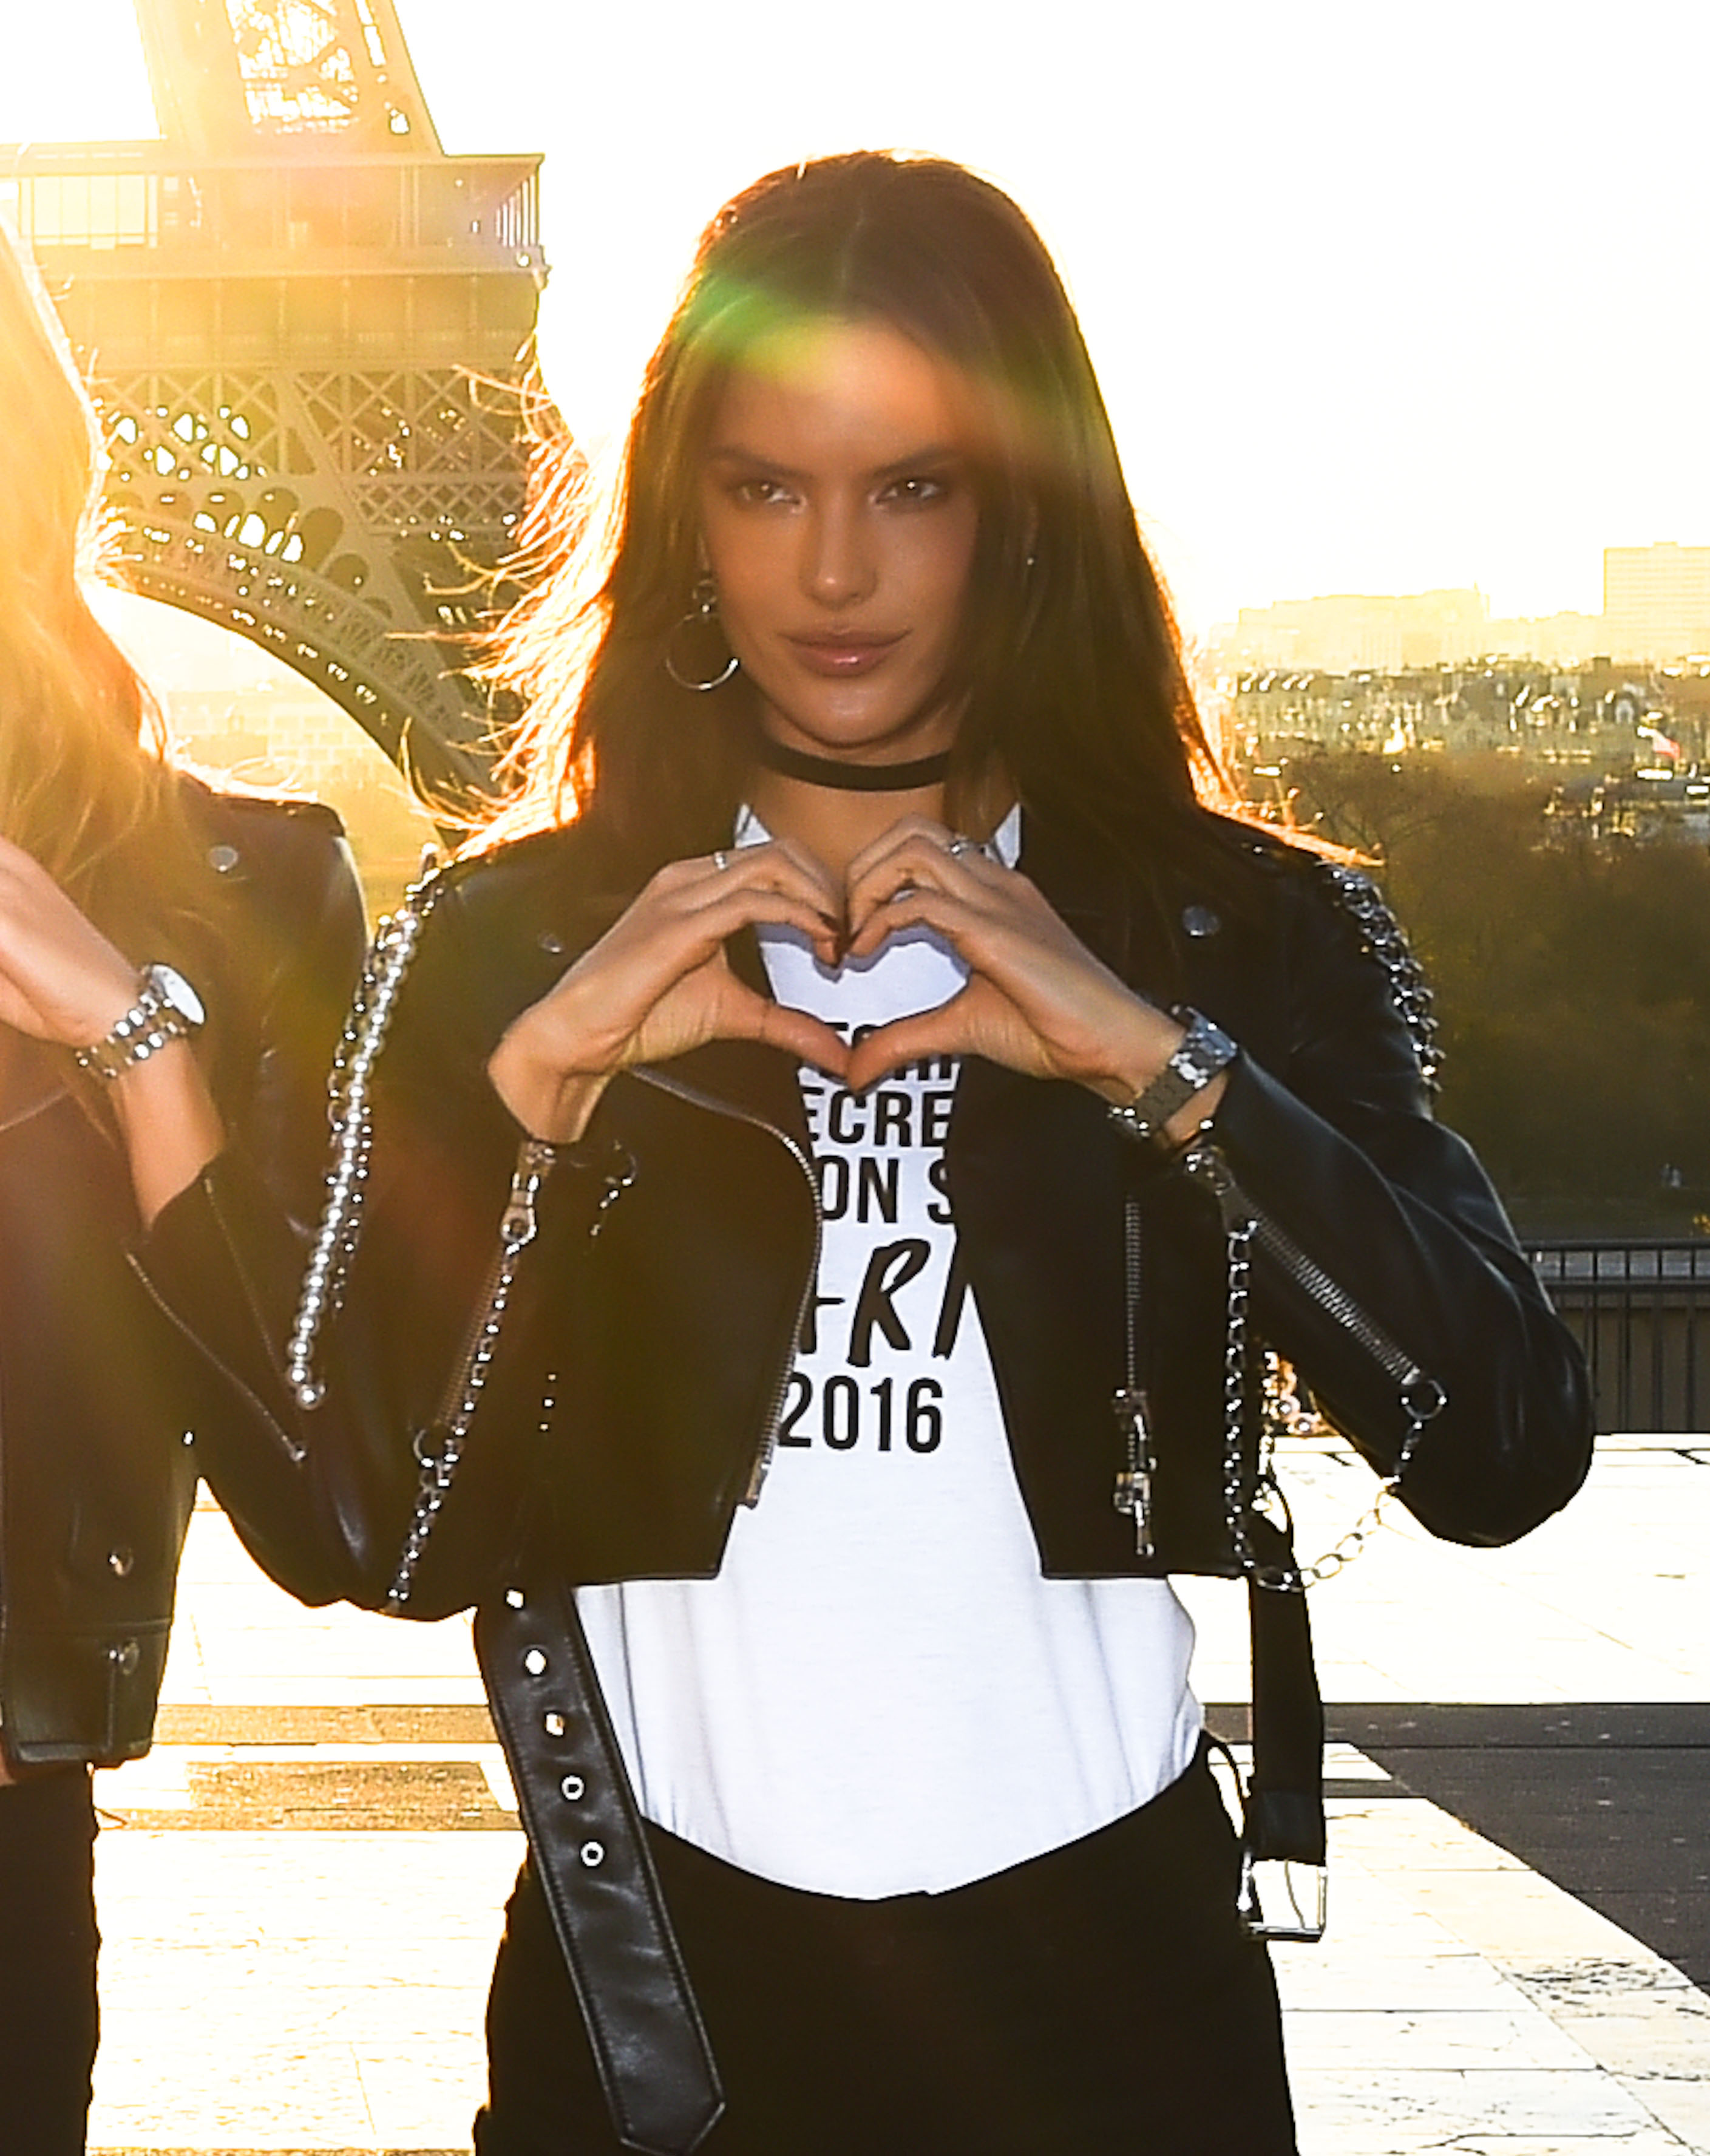 Alessandra Ambrosio posea in front of the Eiffel Tower (Photo credit: Splash News)